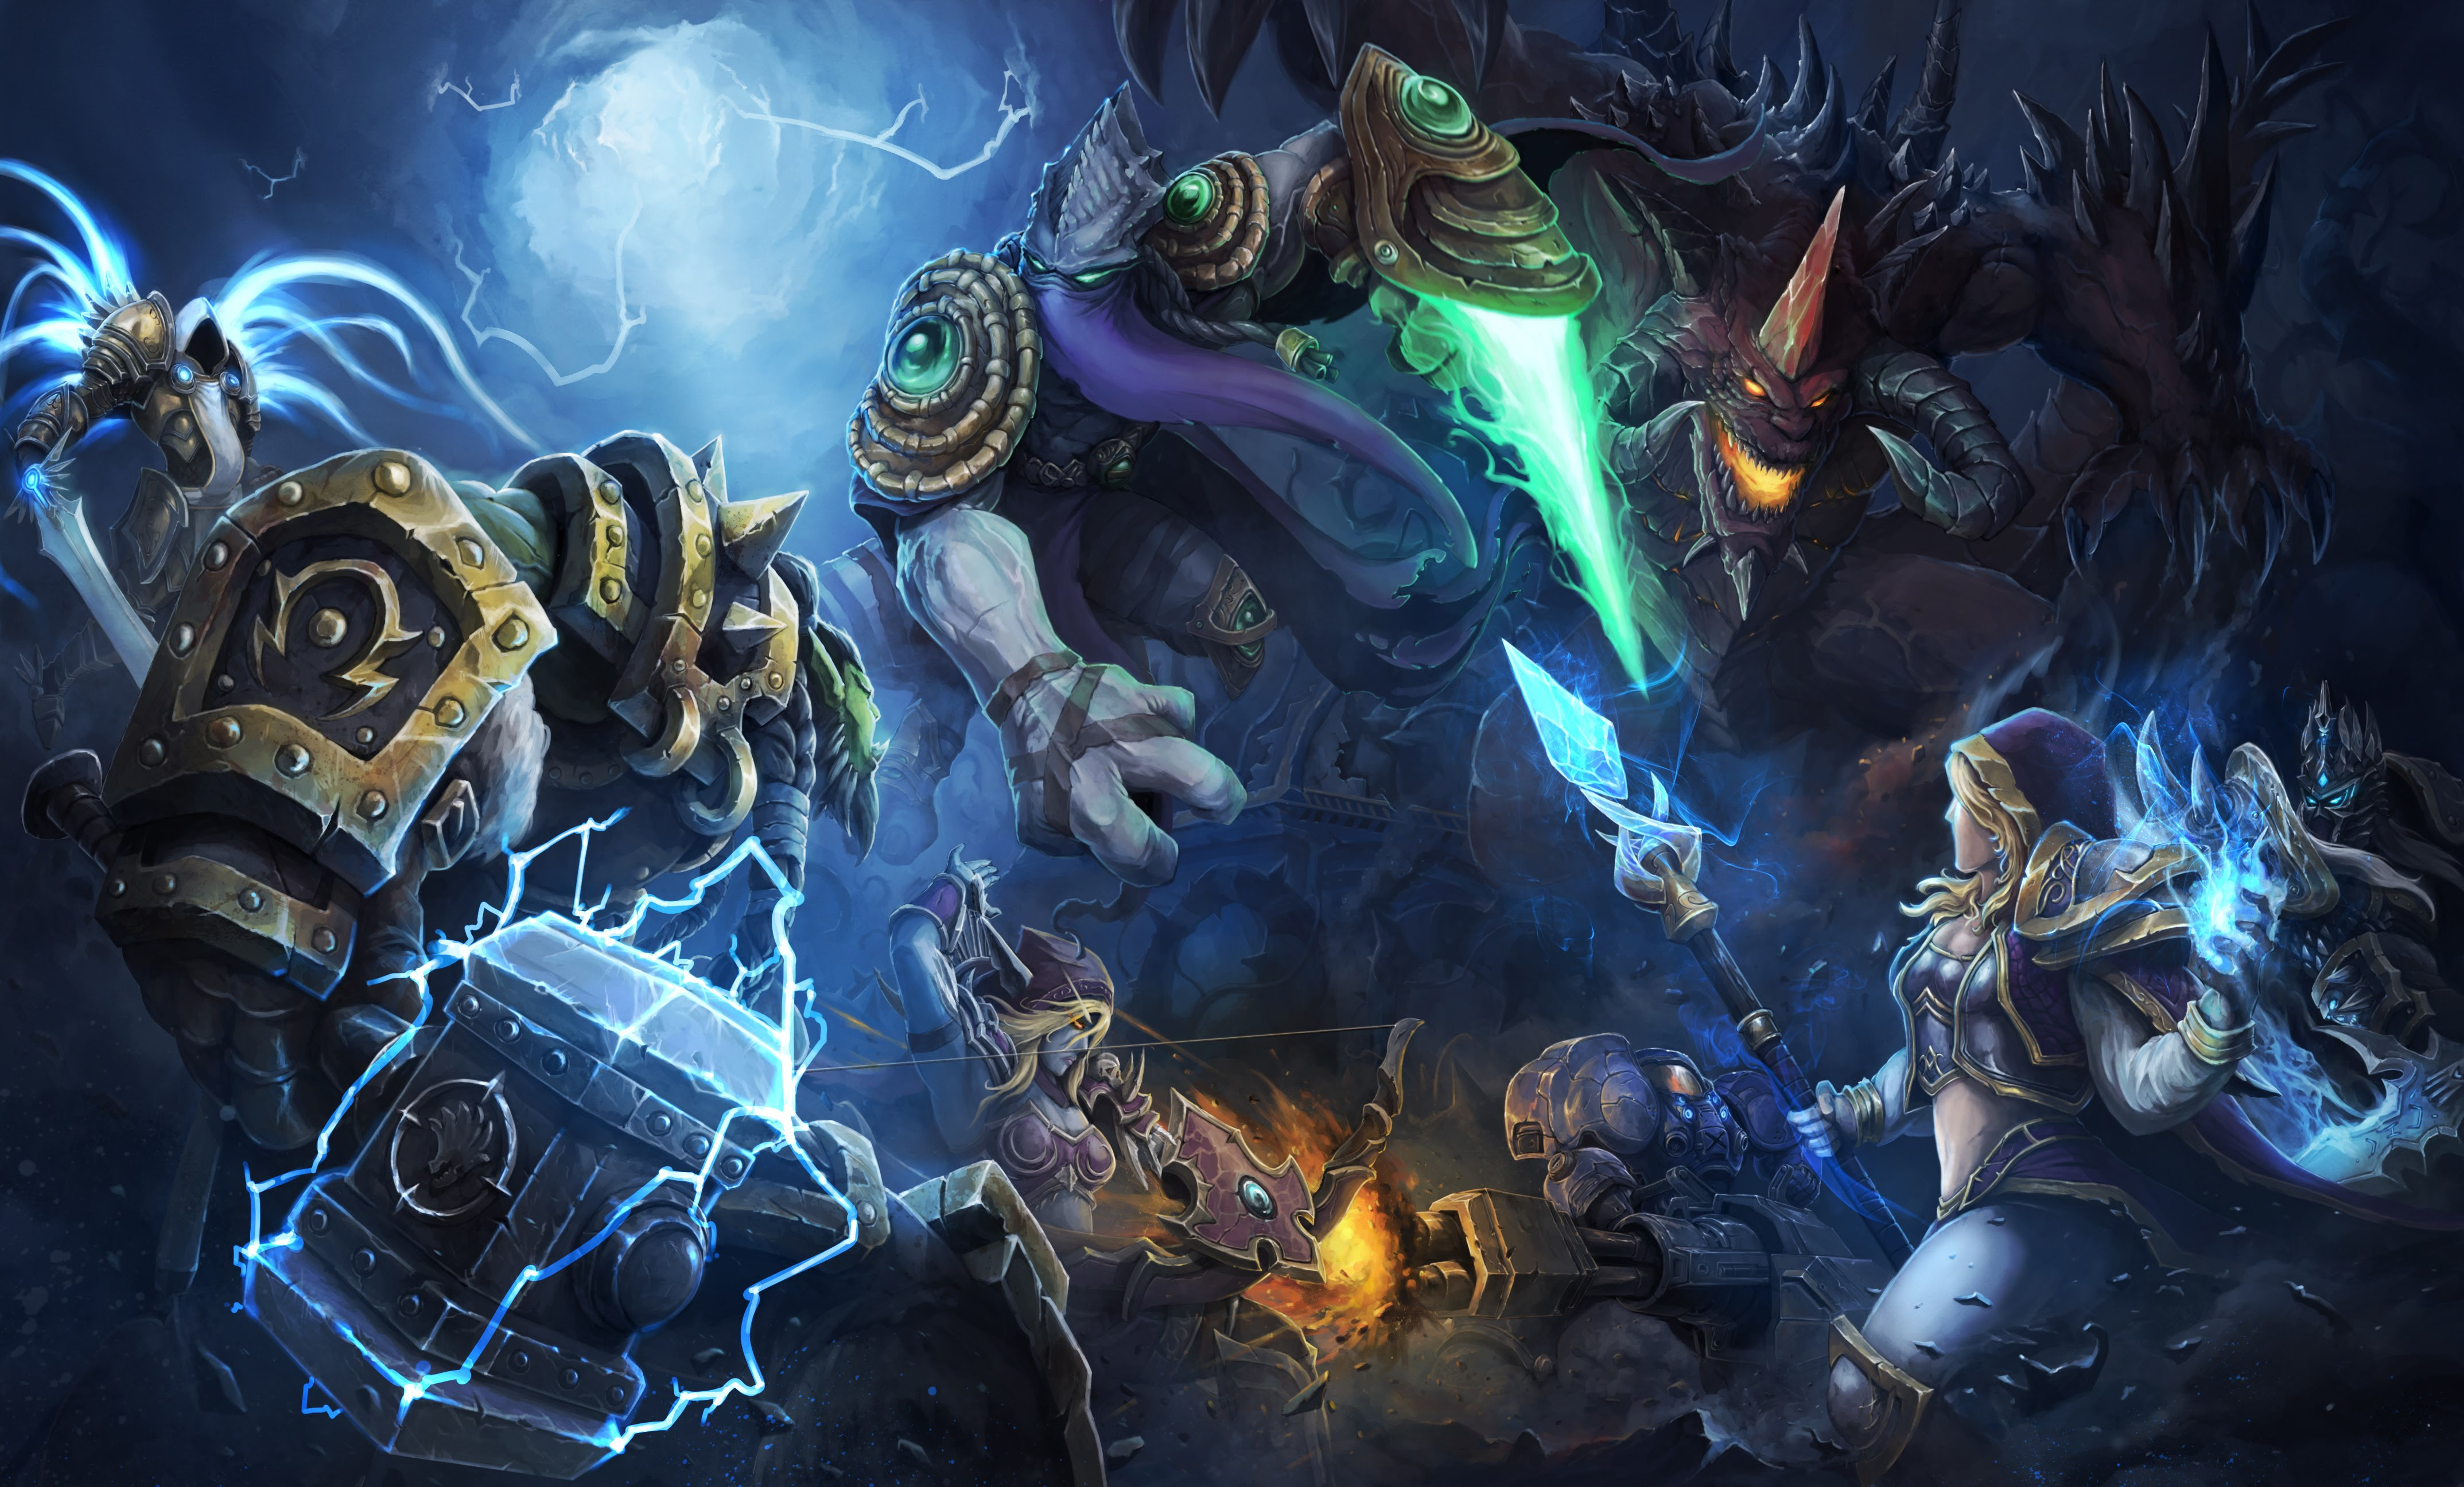 Heroes Of The Storm 4k Ultra Hd Wallpaper High Quality Walls